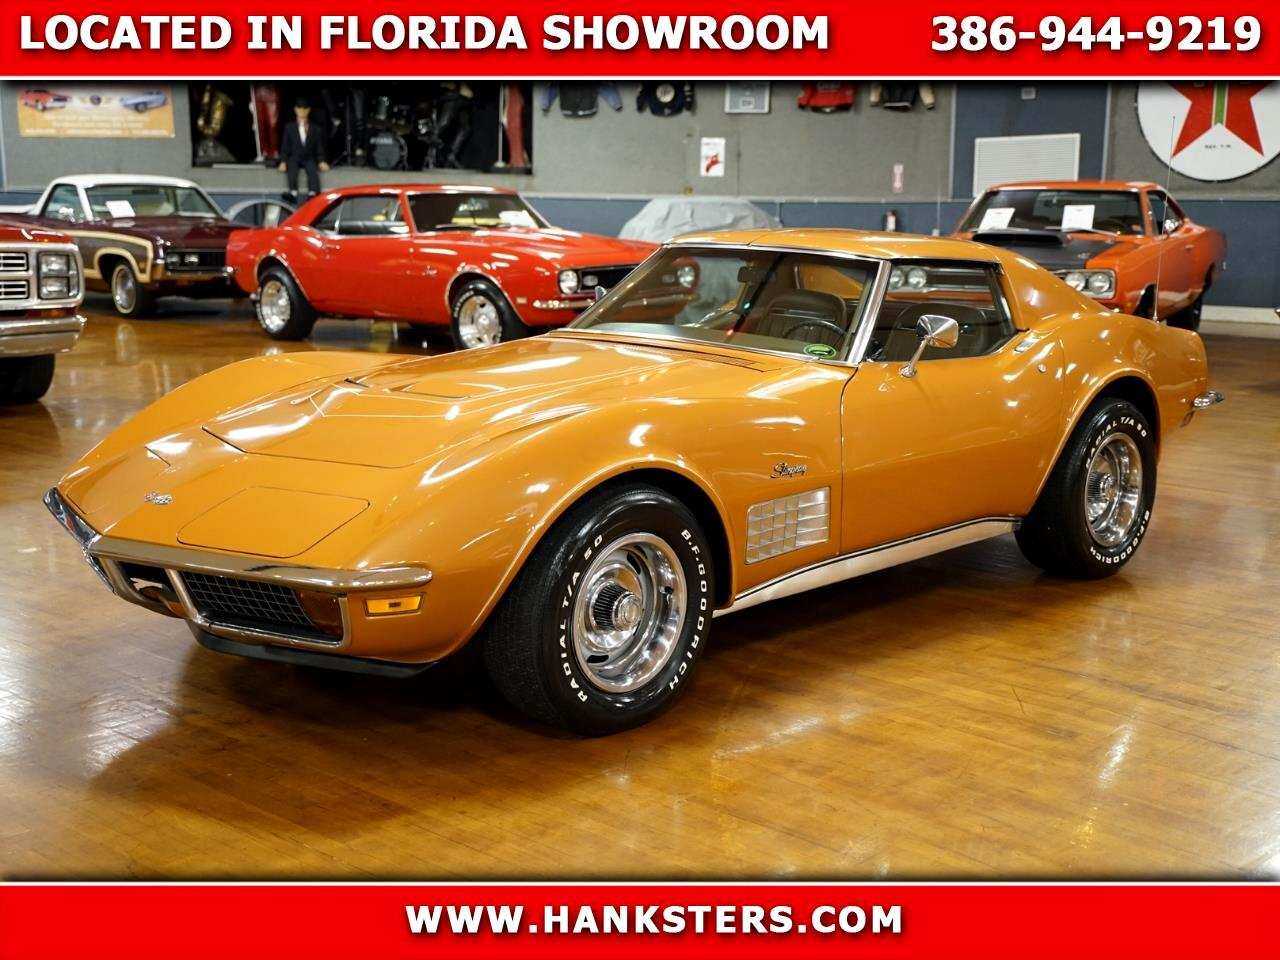 1971 Chevrolet Corvette Numbers Matching